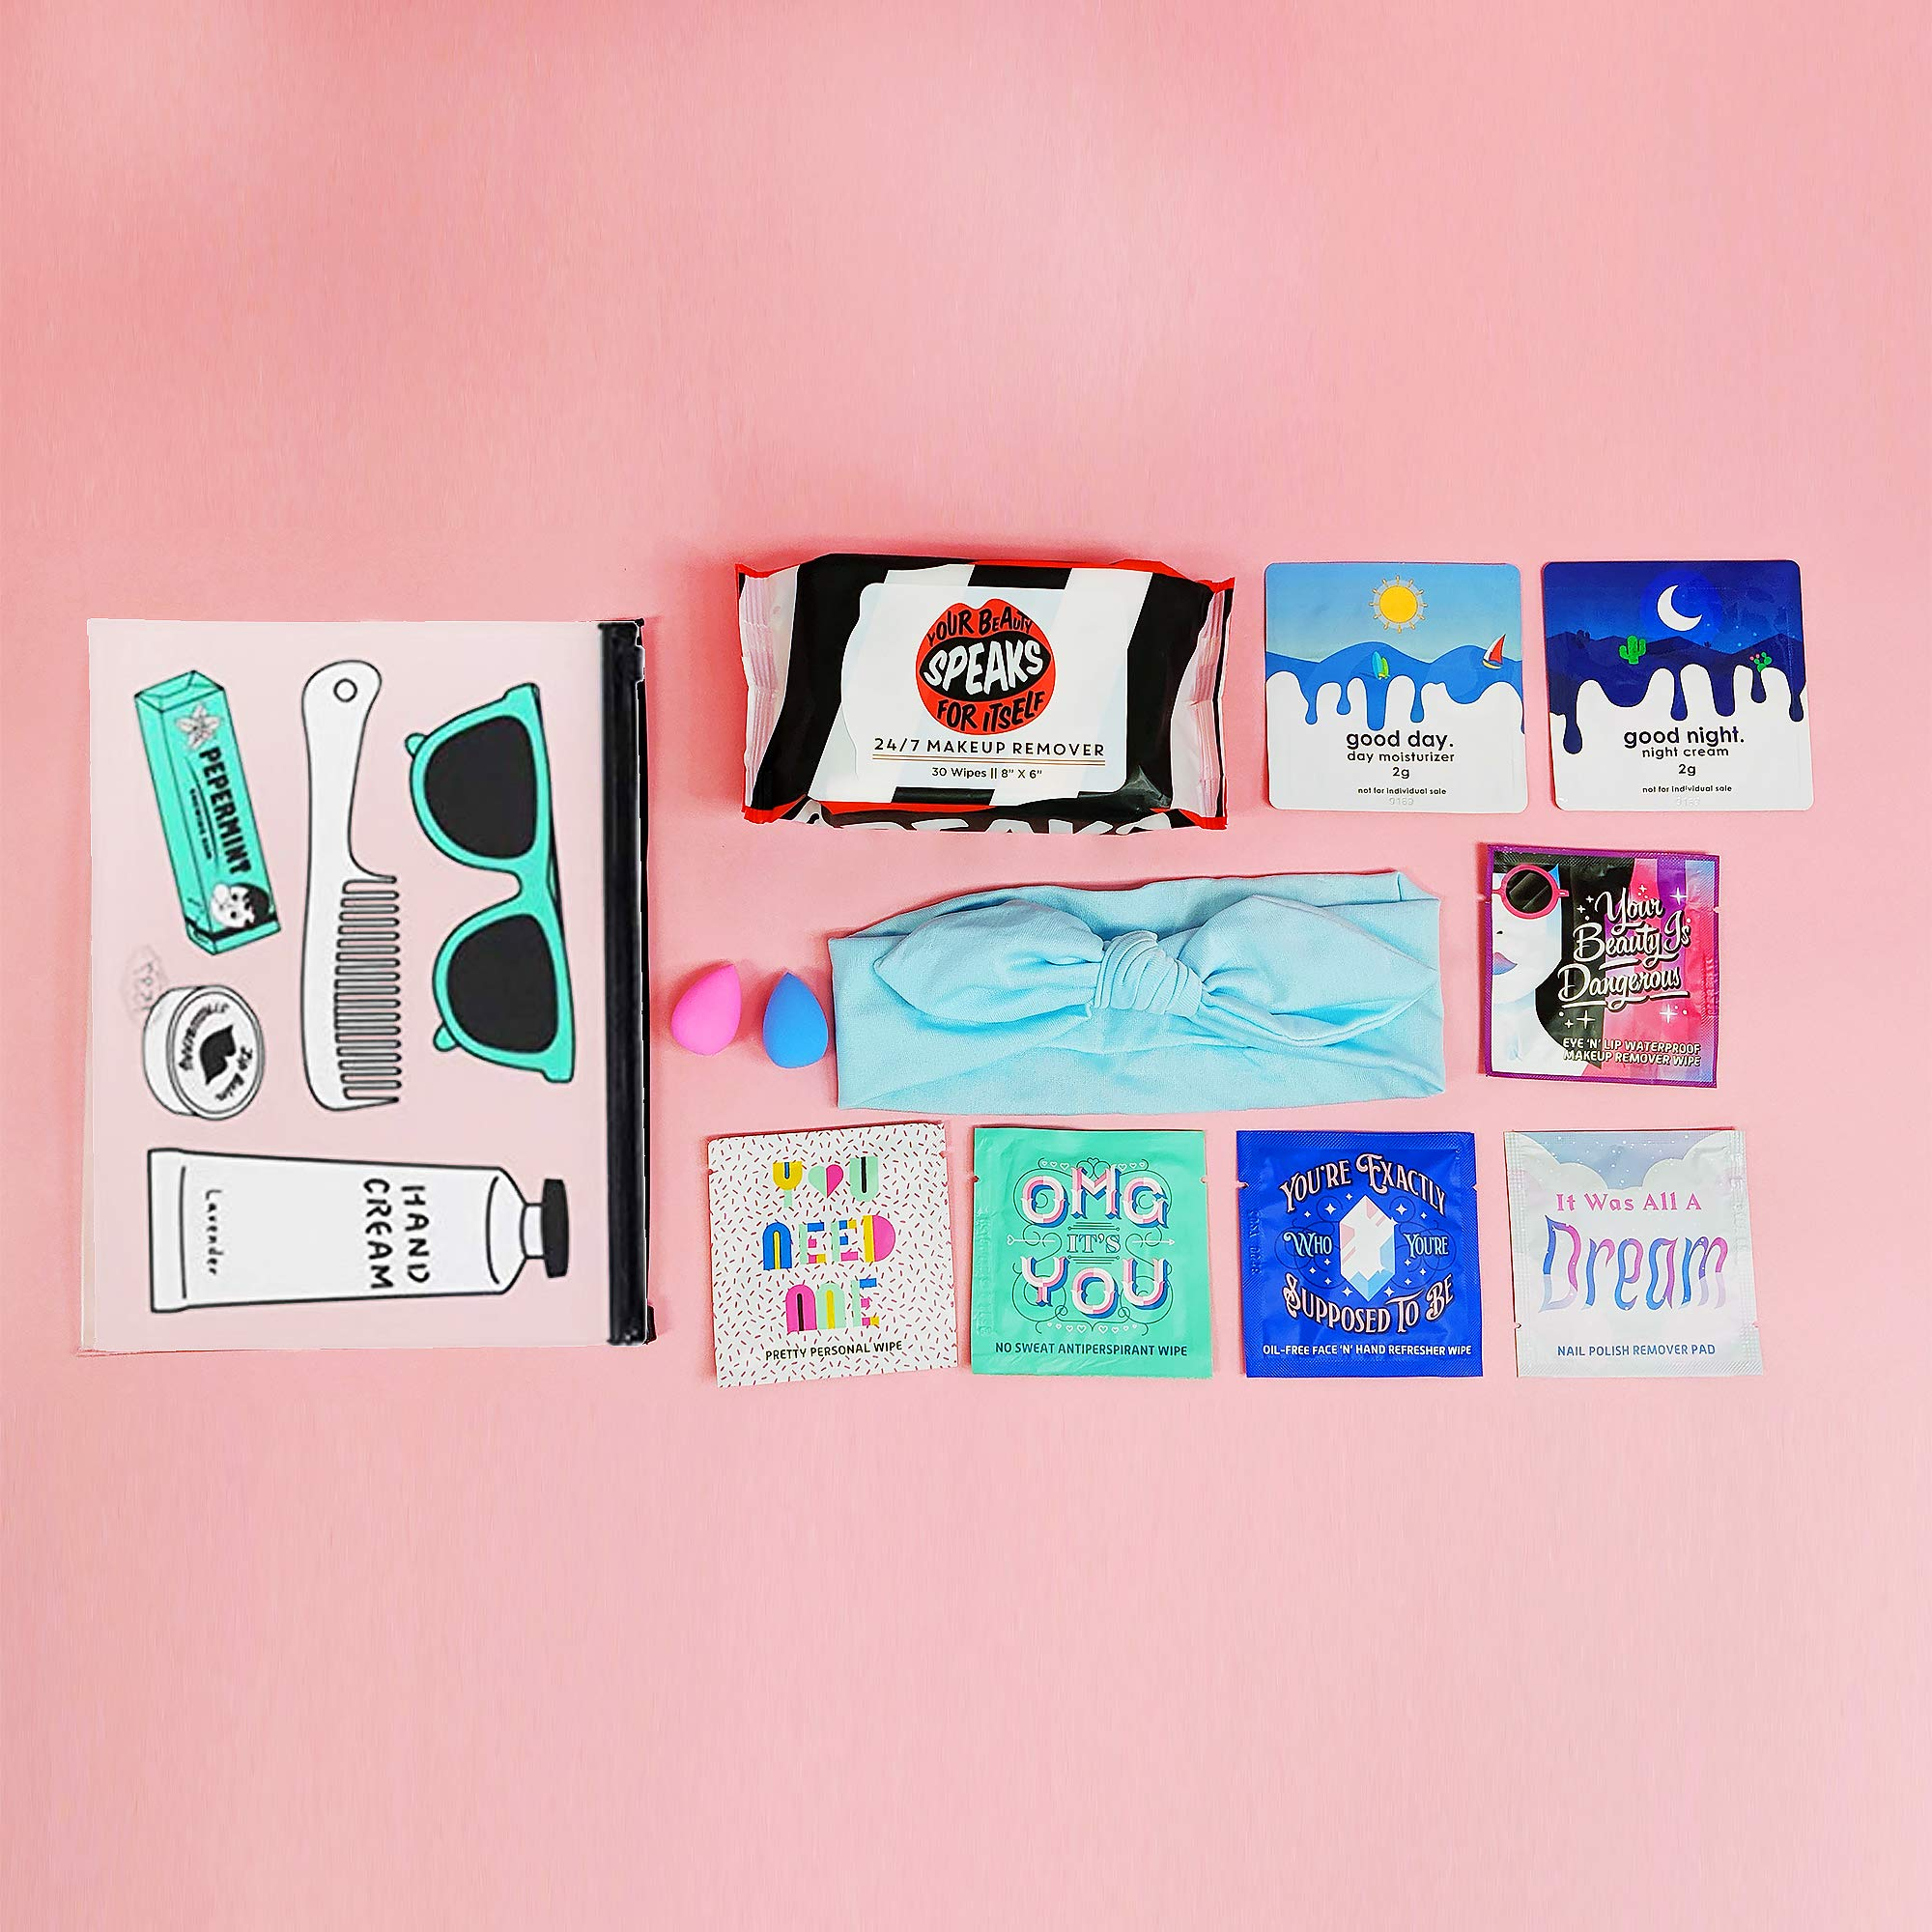 LA Fresh Travel Essentials Wipe Assortment with Makeup Bag | Makeup remover Wipes, Nail polish remover Pads, Feminine Hygiene Wipes, Makeup Sponge & Hairband) TSA Pre-Approved